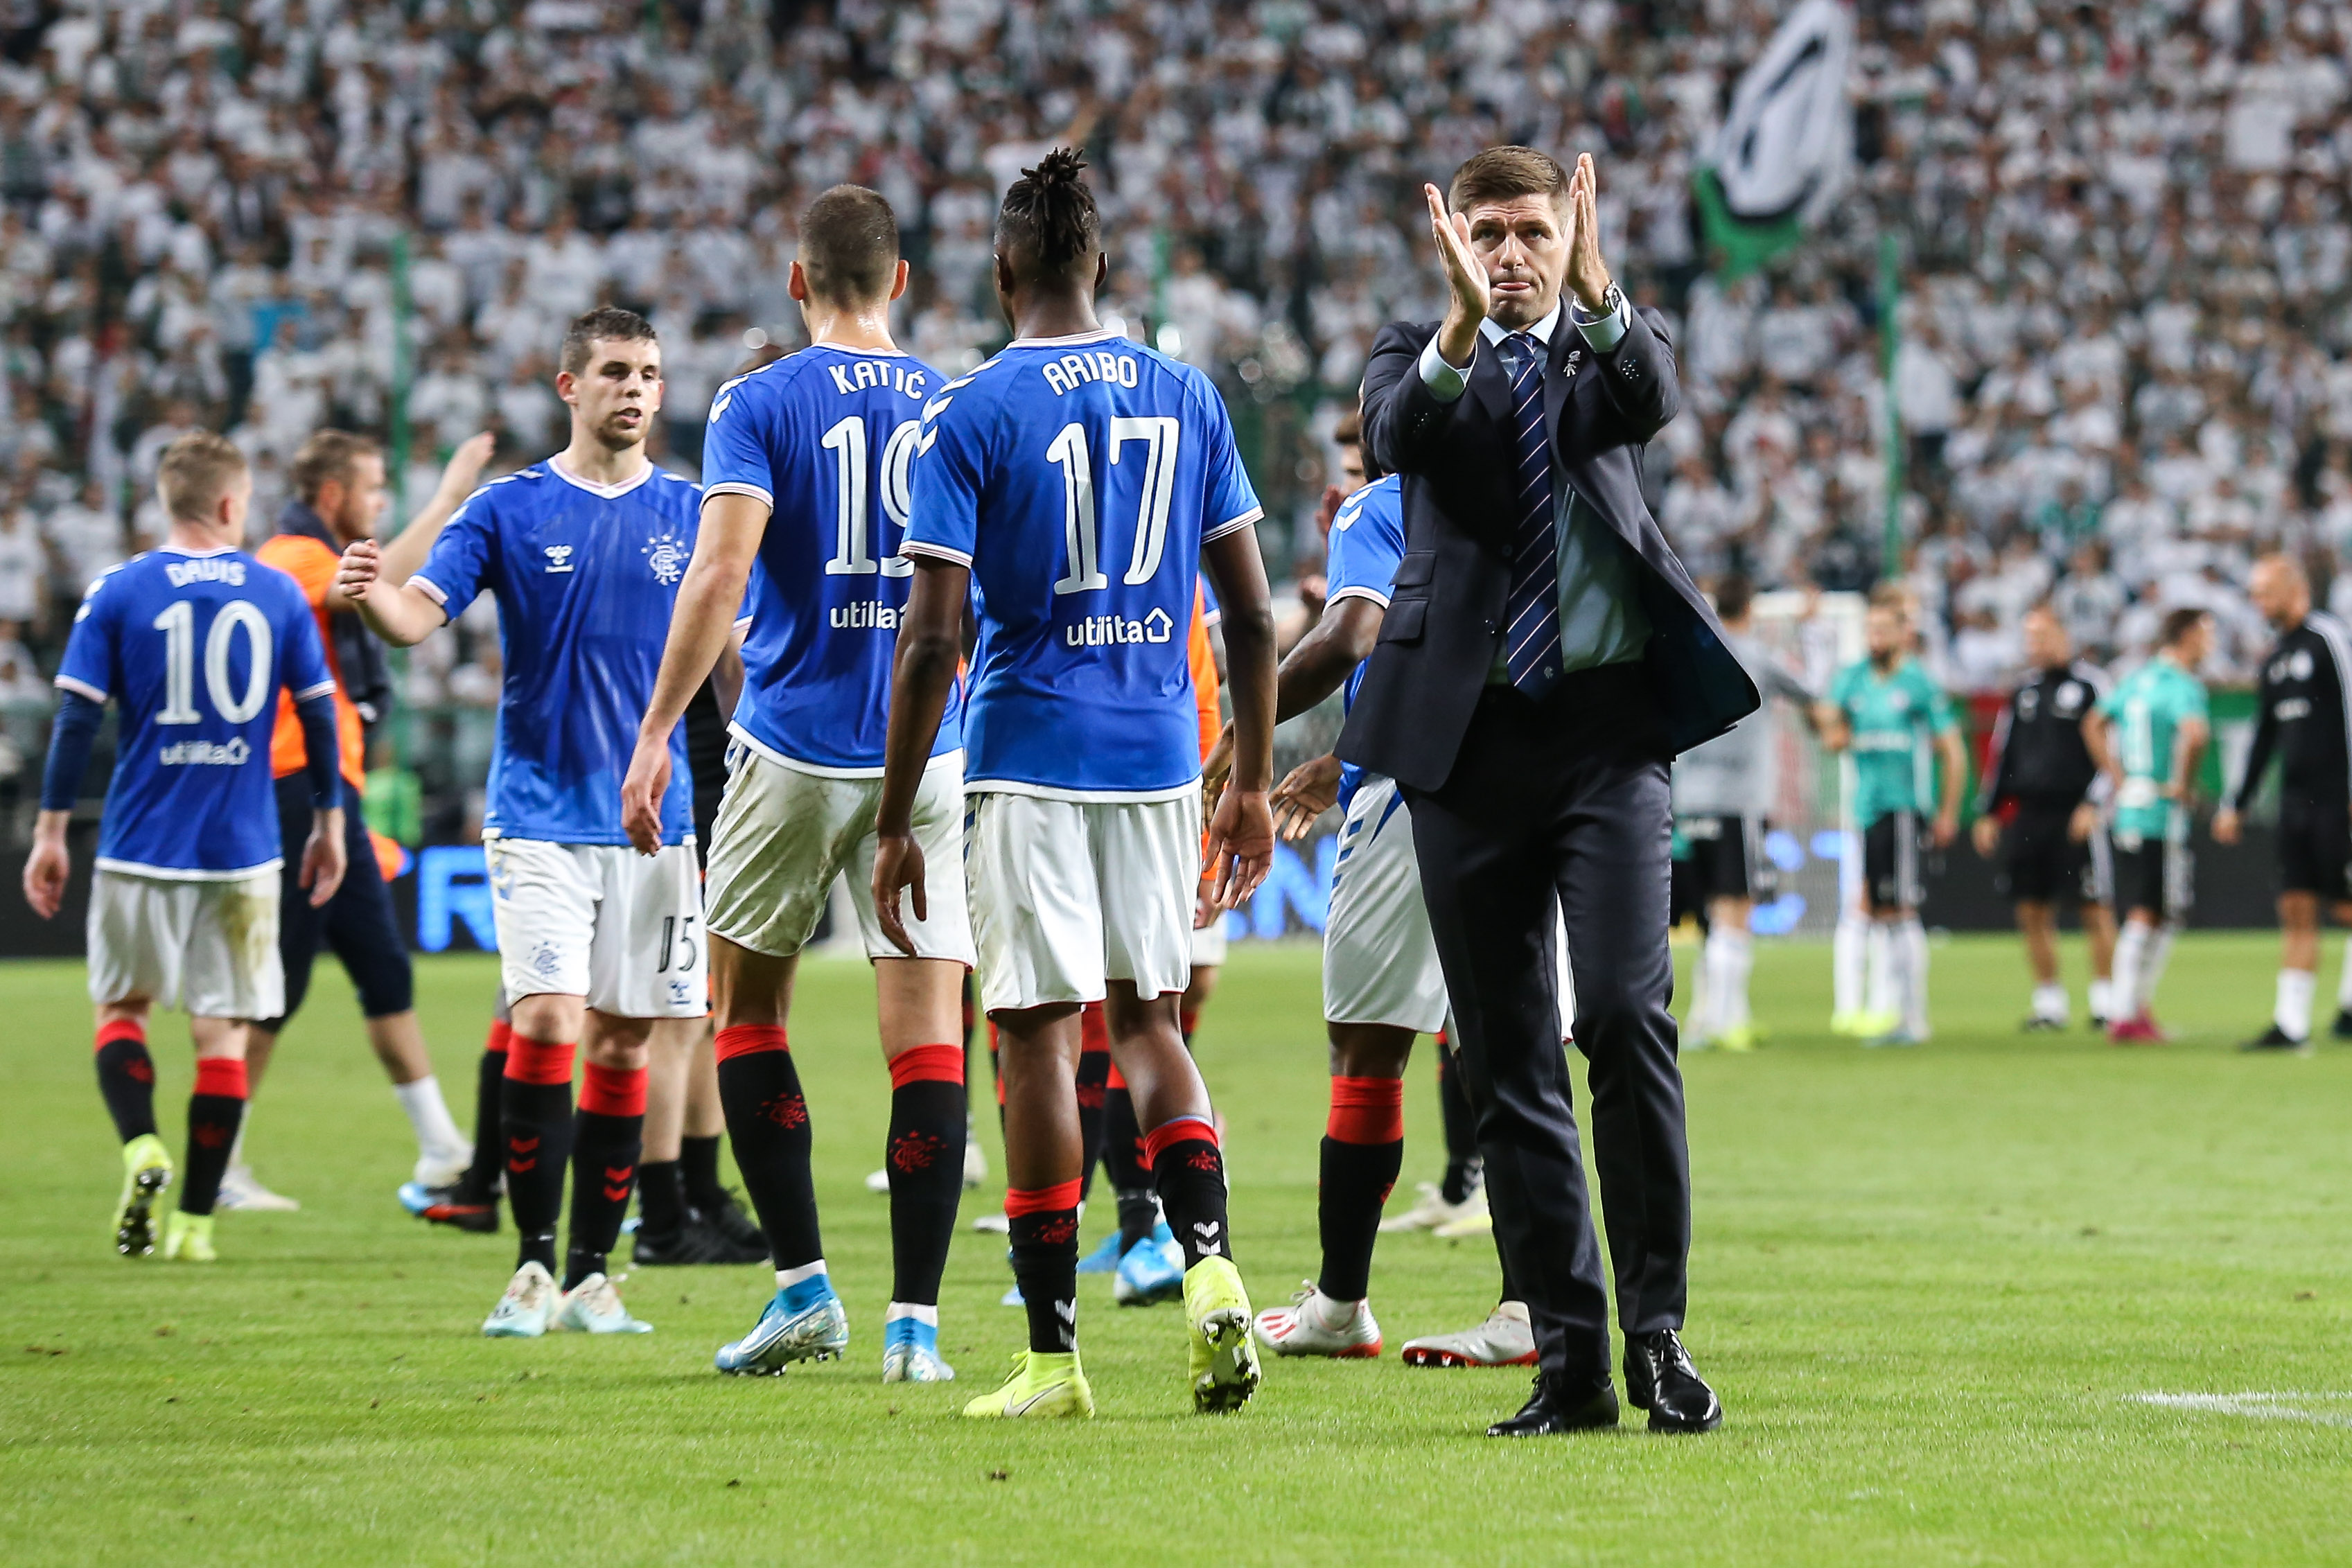 Rangers left Poland with a 0-0 draw against Legia Warsaw